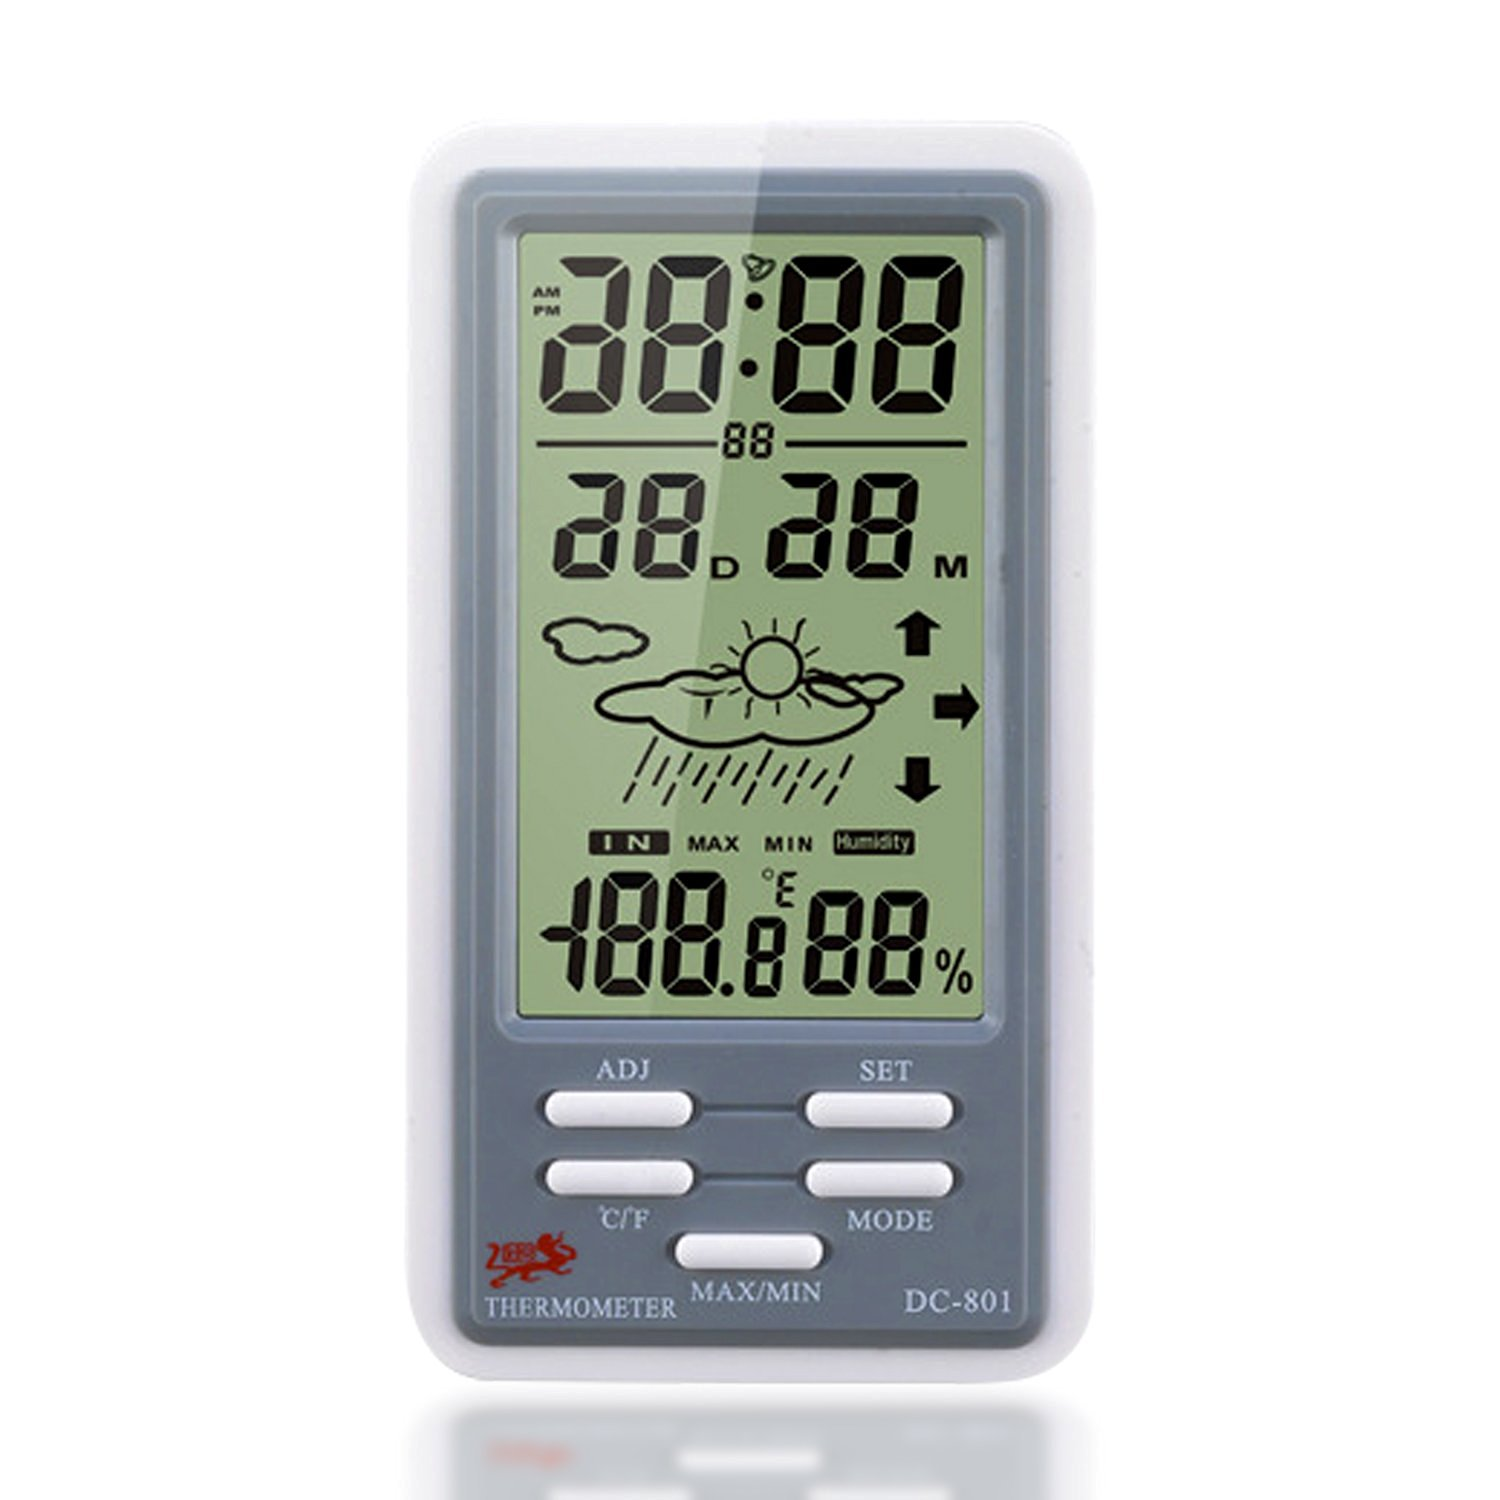 Temperature Humidity Meter,Beyoung (TM) Portable Mini LCD Screen Digital Indoor Outdoor Thermometer Hygrometer Meter With Min/ Max Value And Clock (Gray)